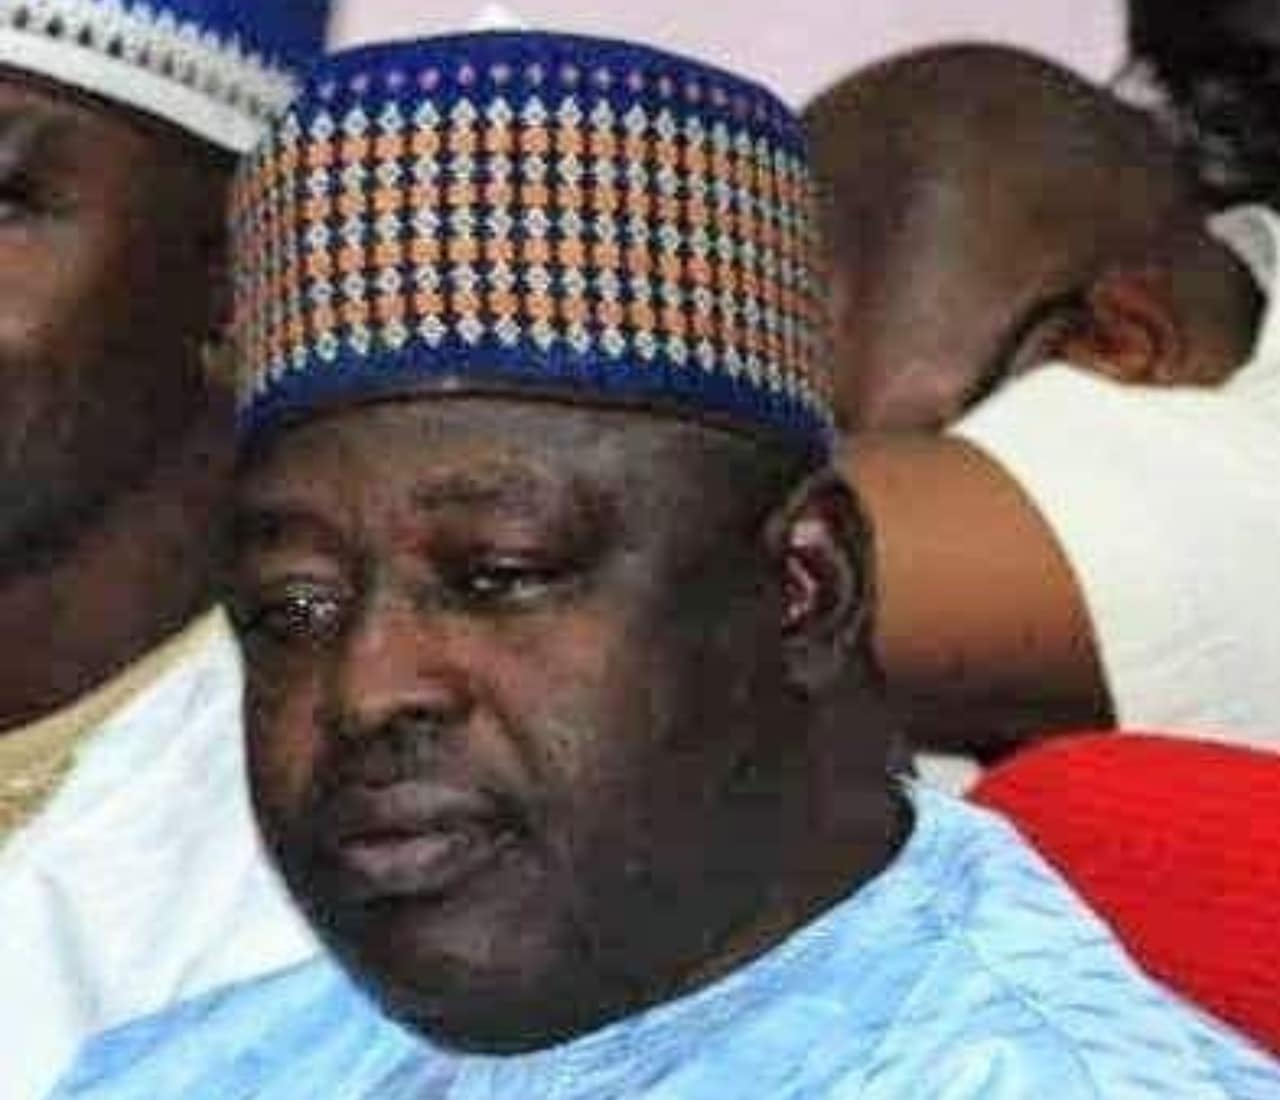 Gov. Maimala Buni Of Yobe On Friday Expressed Satisfaction With The Level Of Compliance With The Directives Of The State Government In The Fight Against The Coronavirus (covid 19) Pandemic. Buni In A Statement Issued By His Director General Press And Media Affairs, Mamman Mohammed, The Dire